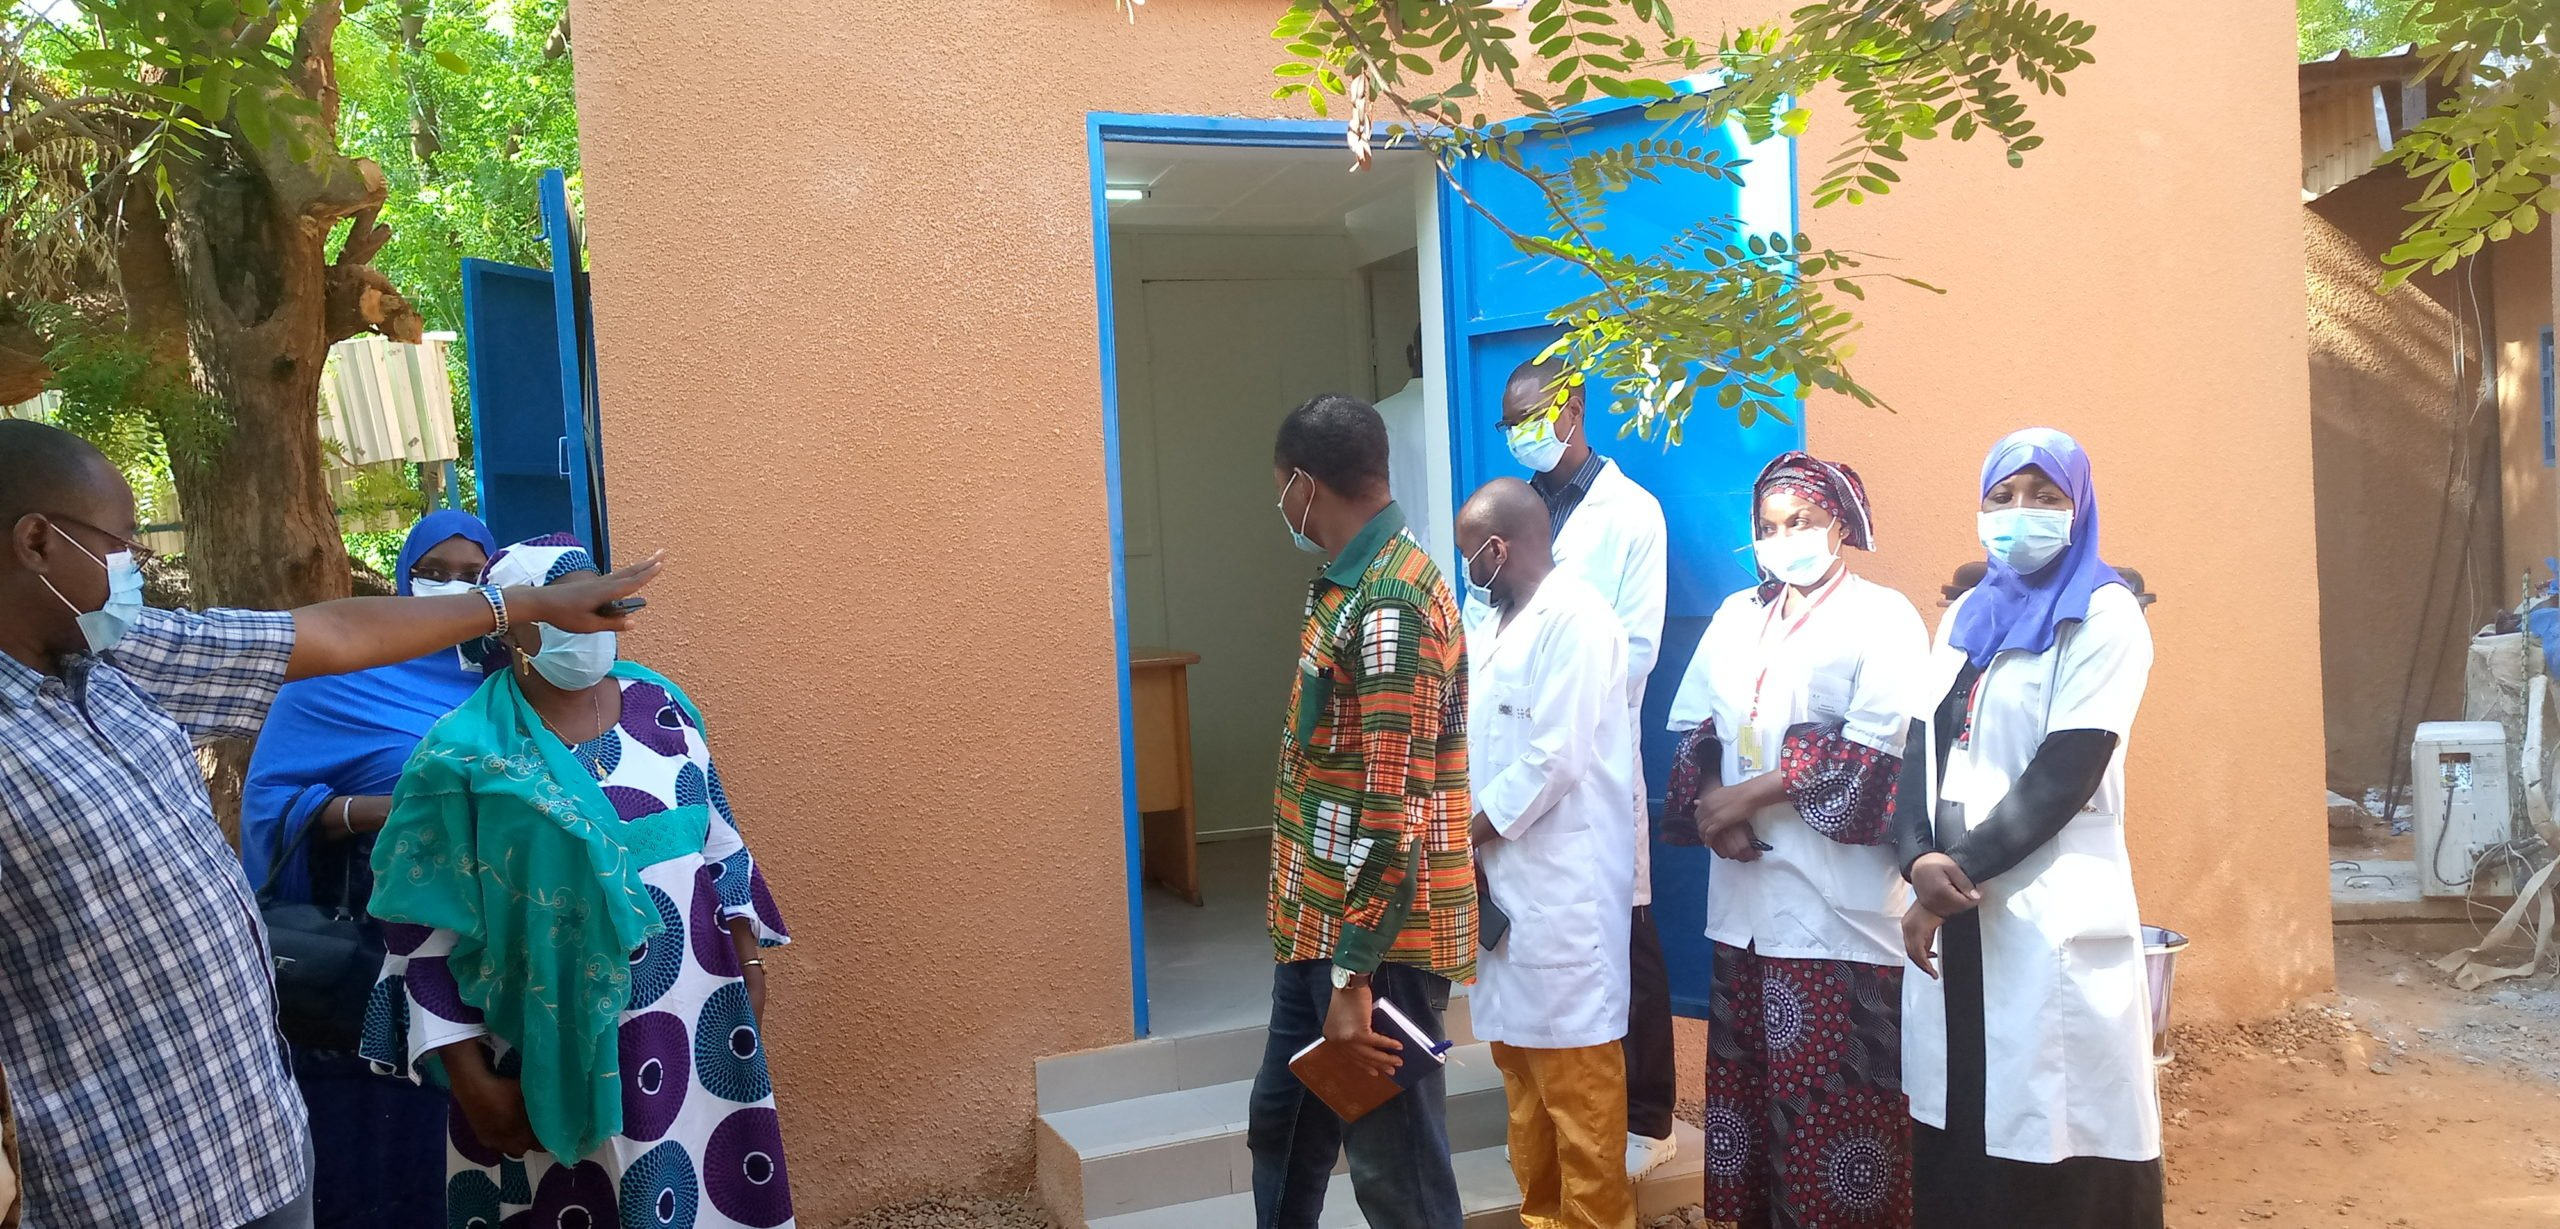 Niger – Management of Covid-19 suspected cases at the Regional Hospital Centre of Niamey